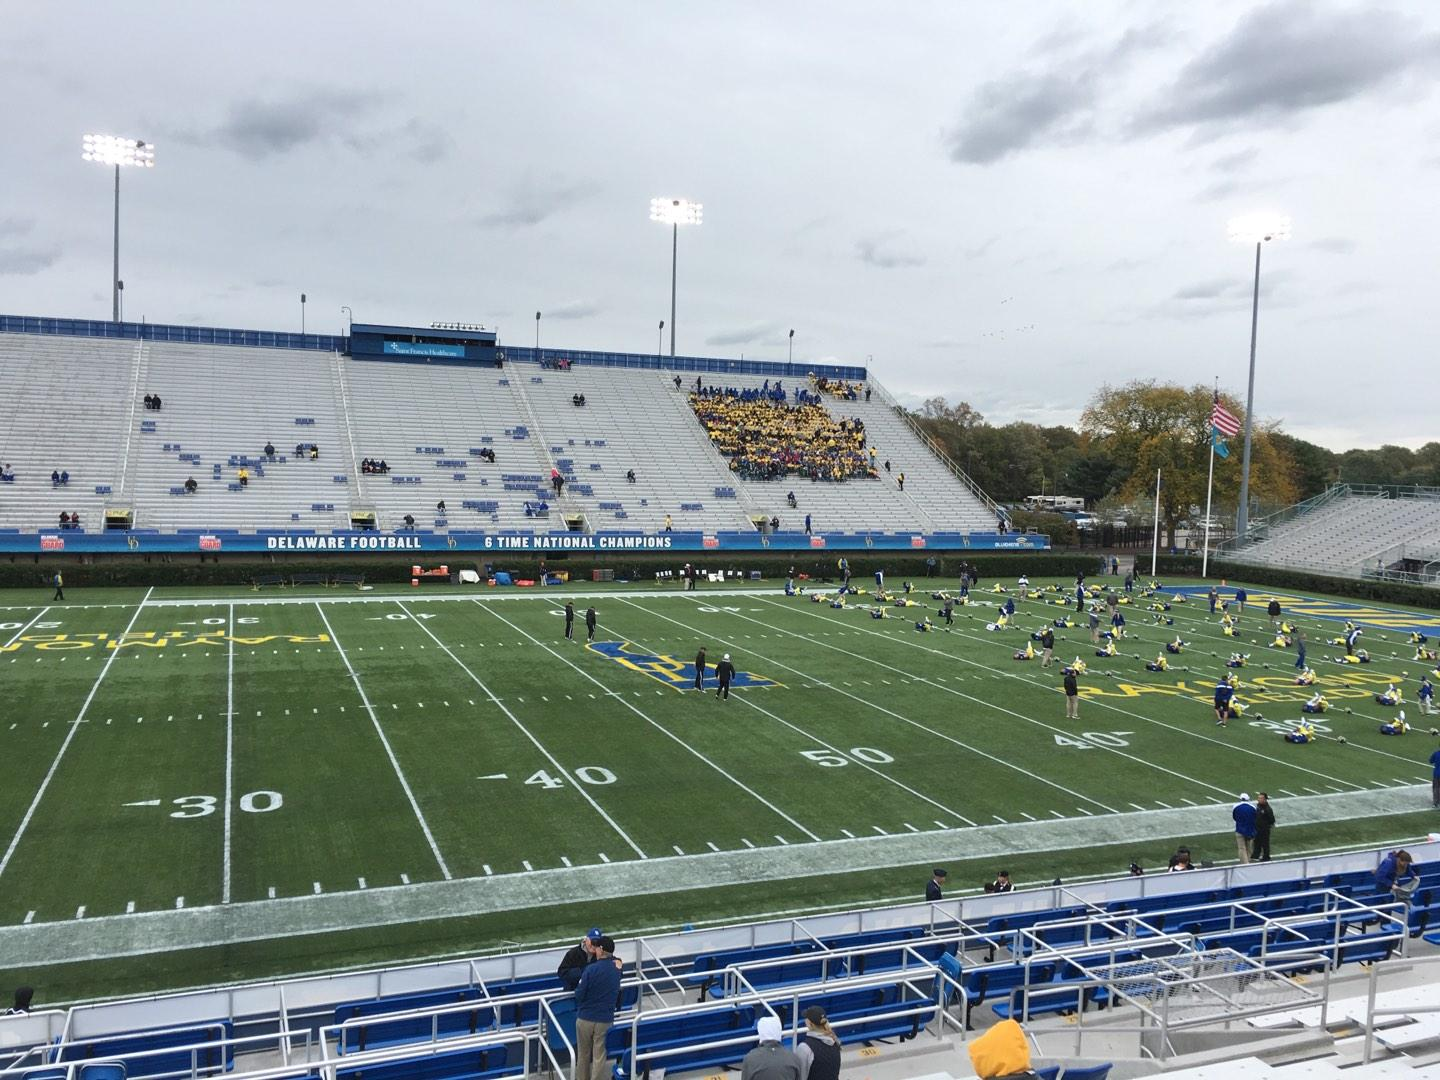 Delaware Stadium Section E Row P Seat 18